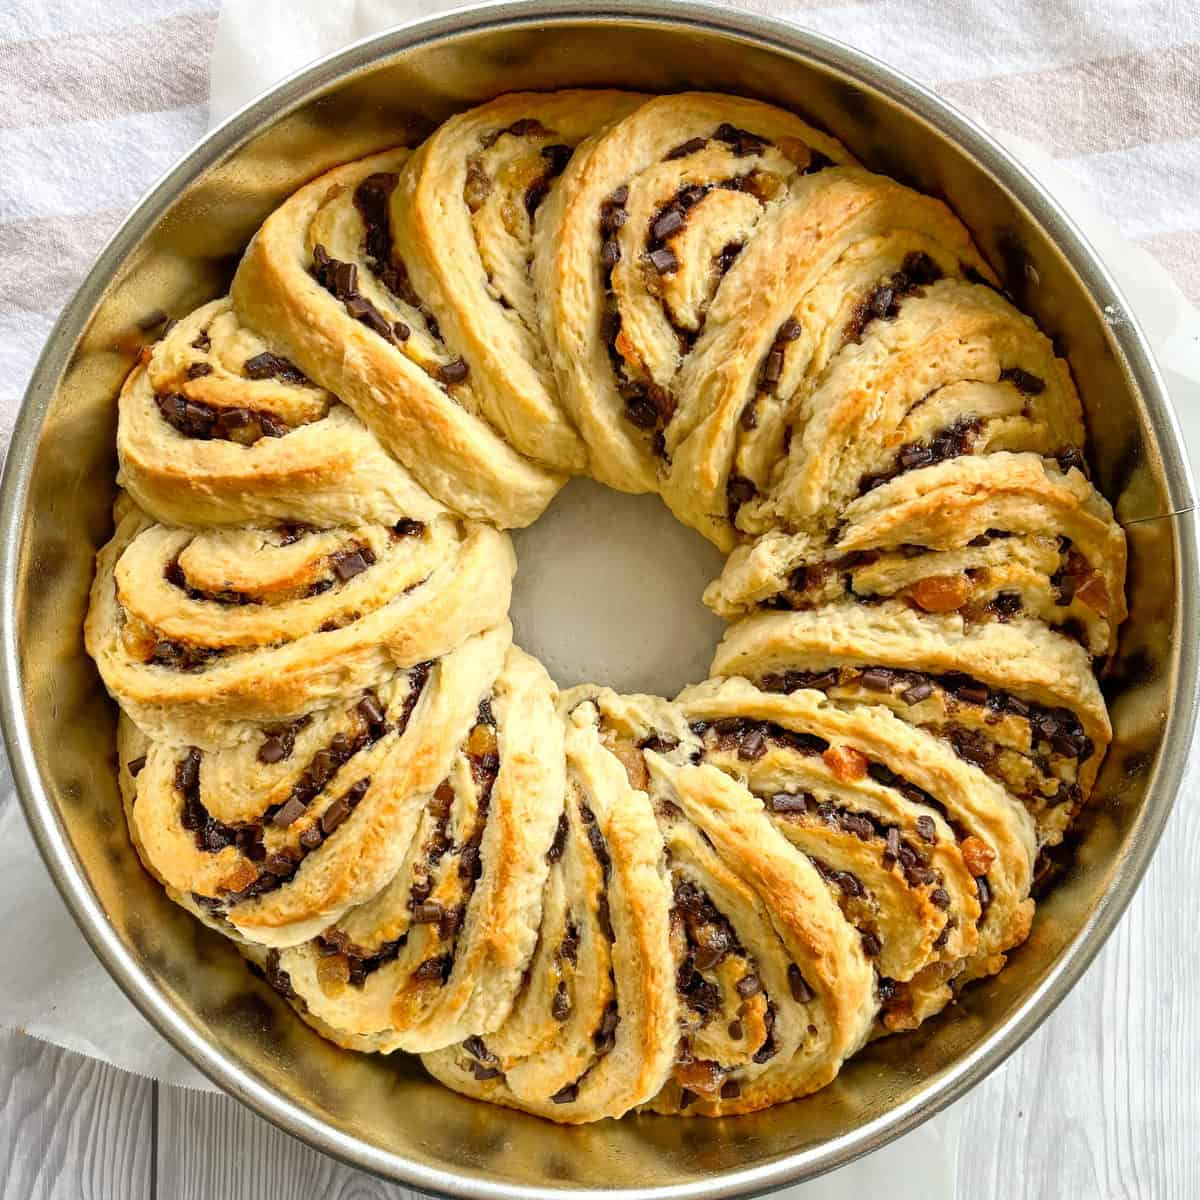 Freshly baked and golden brown apricot and chocolate scrolls